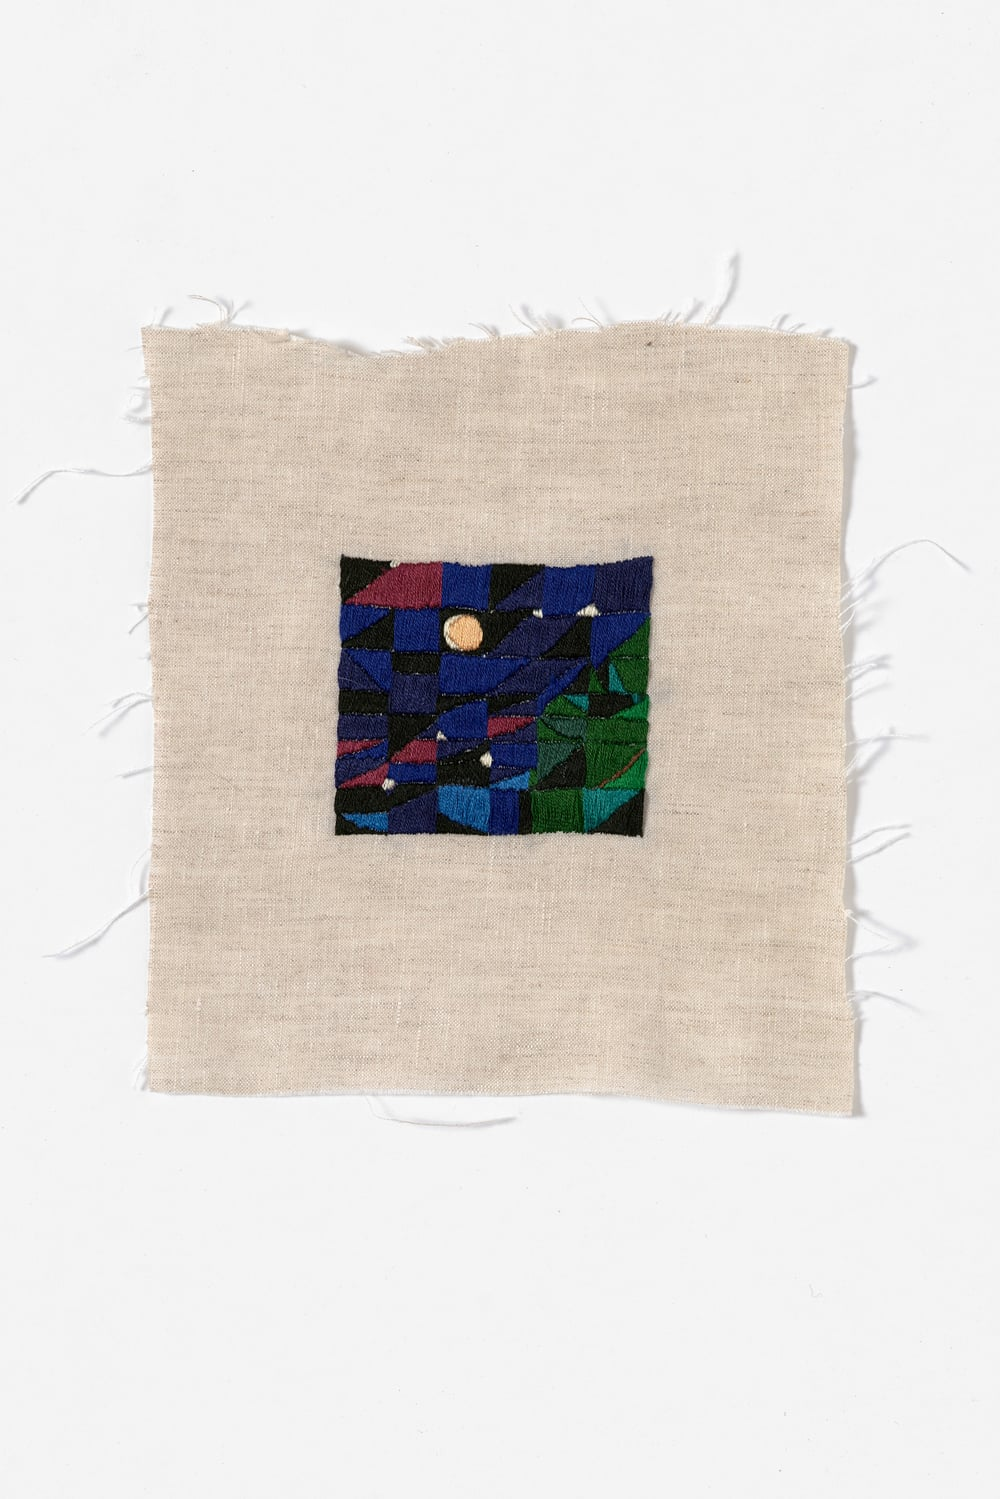 Campfire eclipse, Glen Forbes  2015 Cotton thread on linen 19.5 x 21.5cm